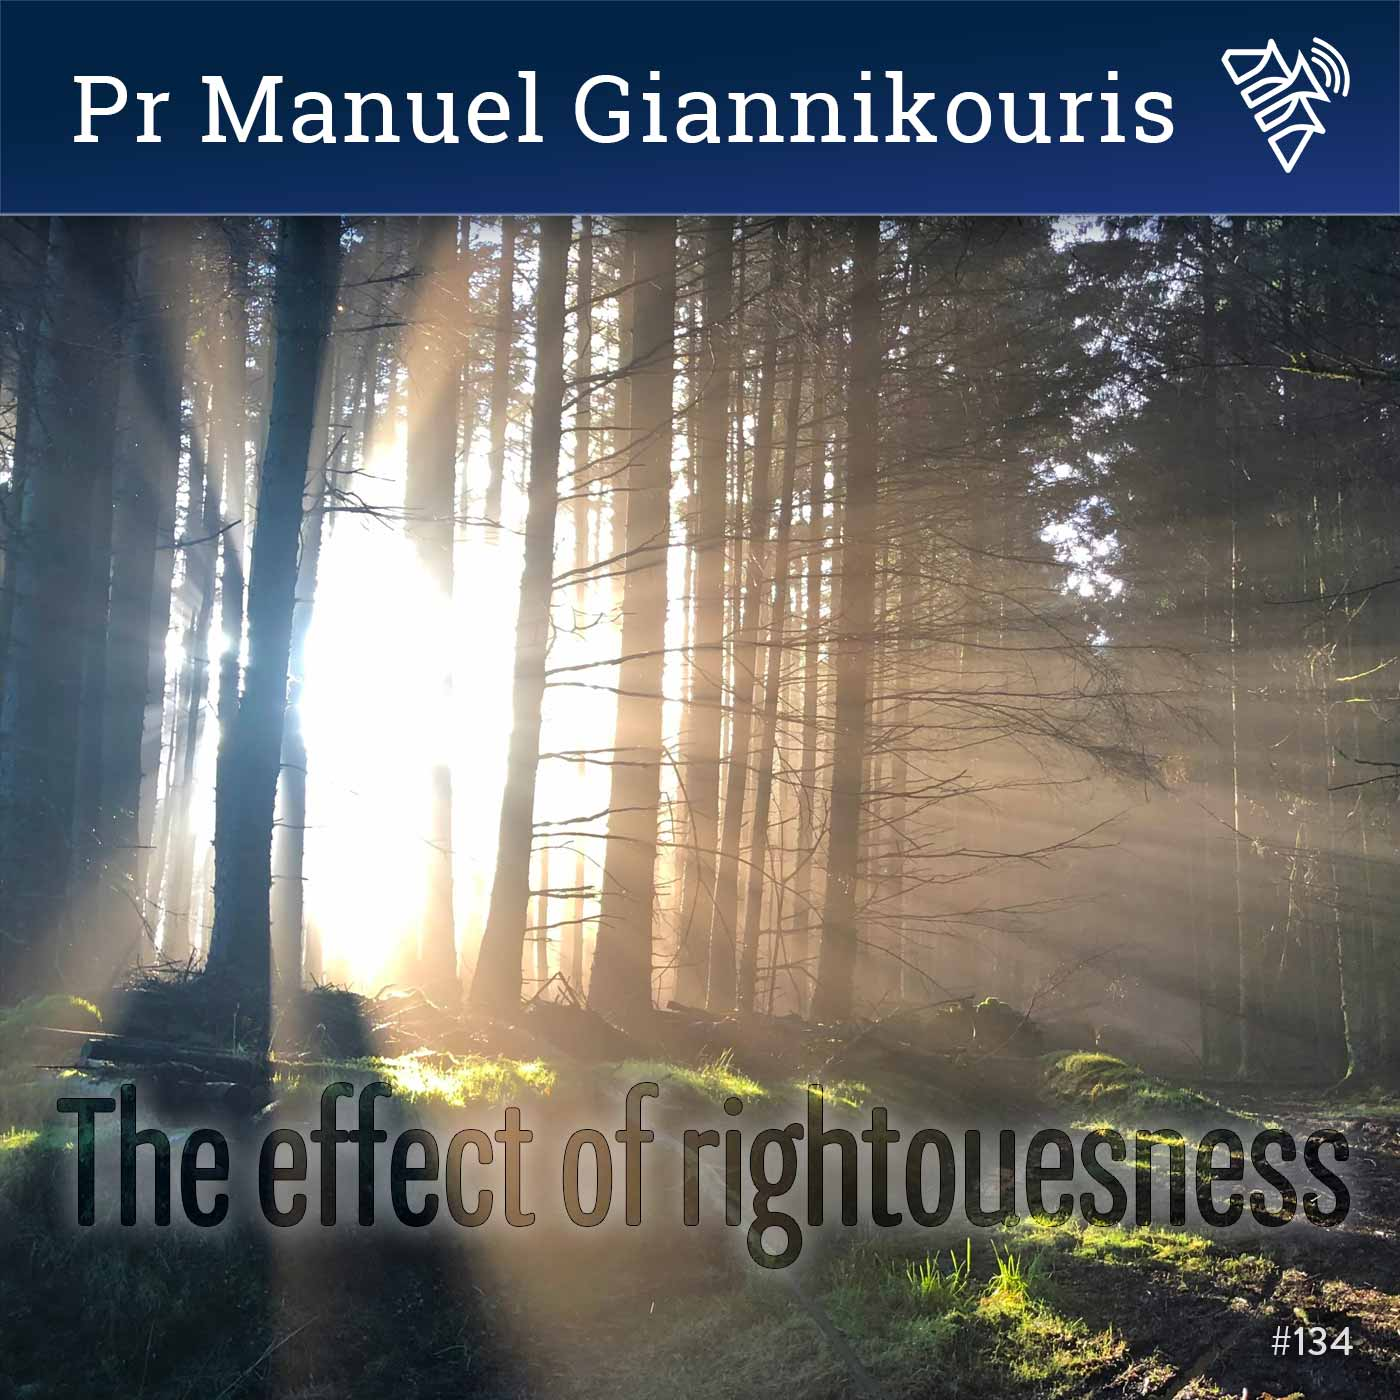 The effect of righteousness